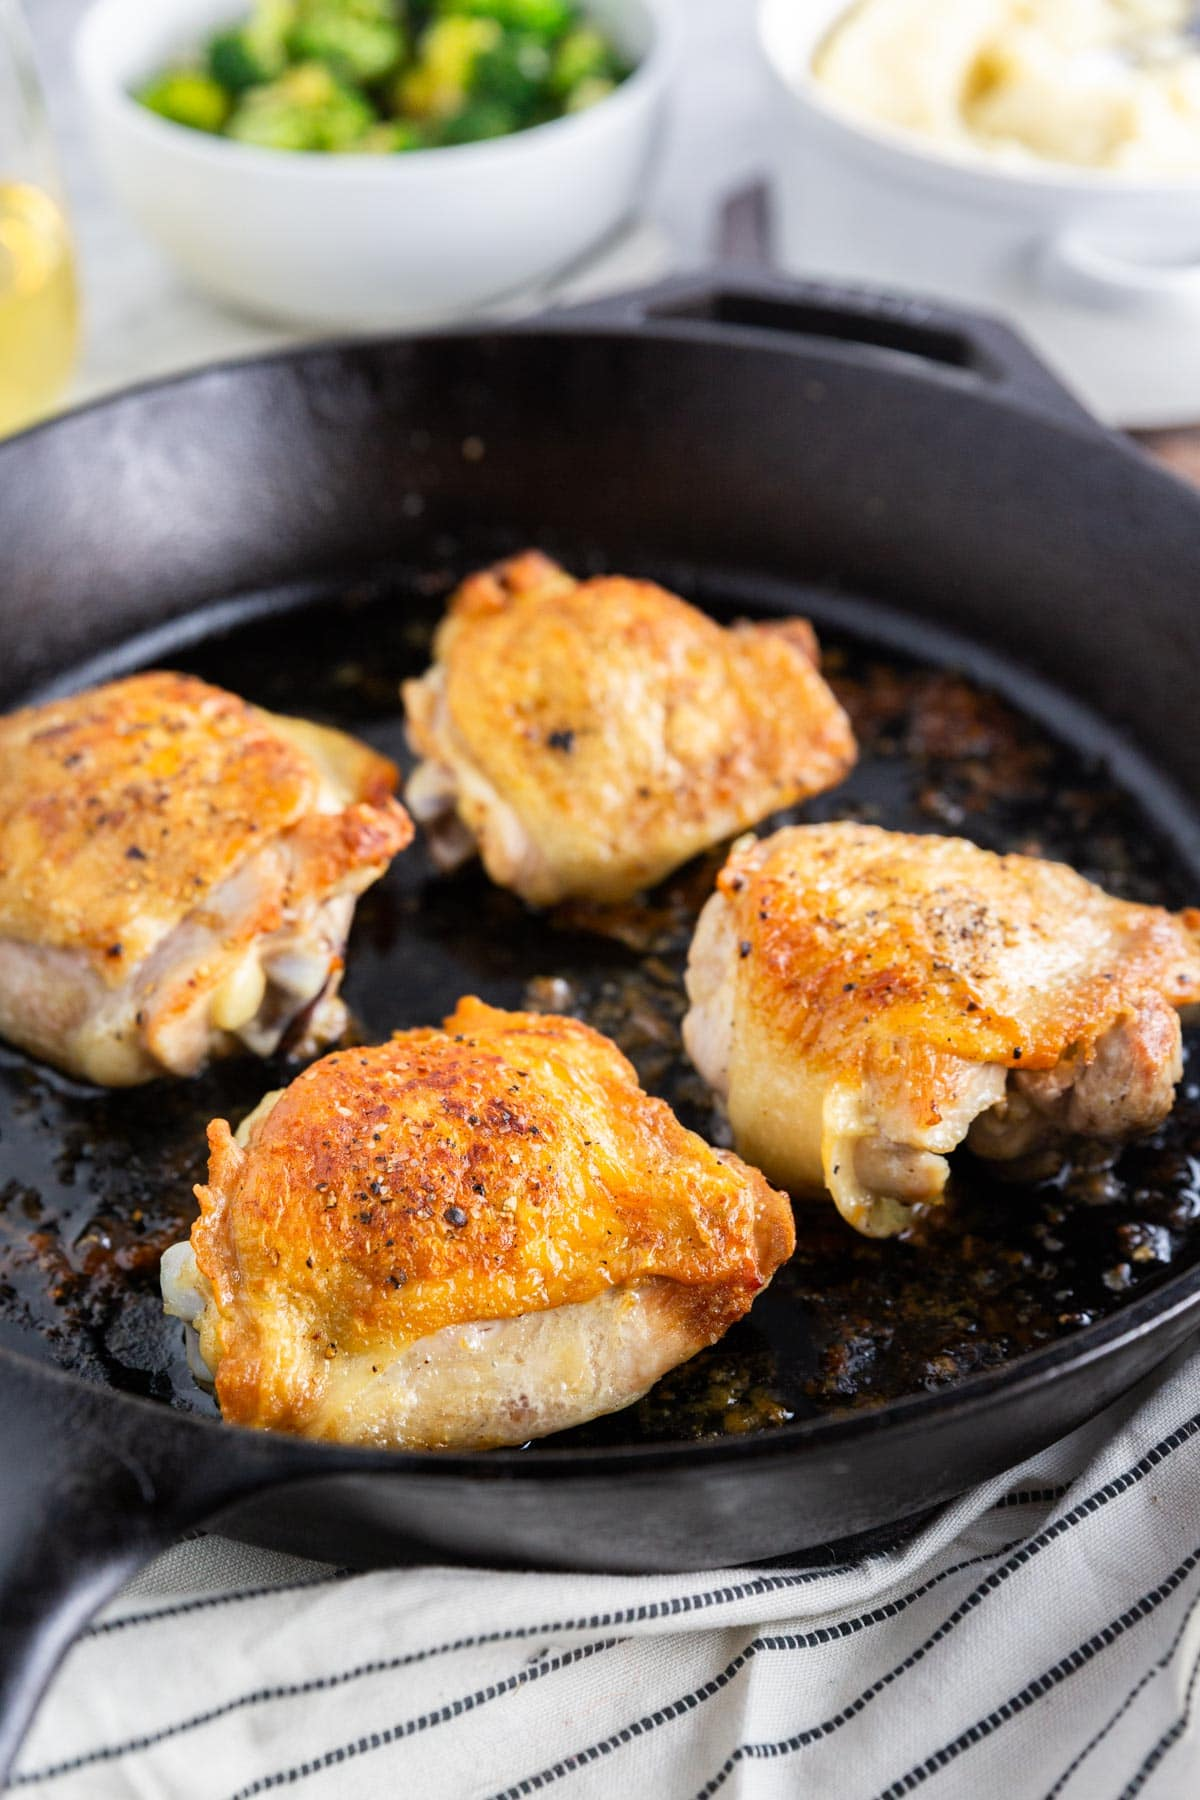 A photo of a large cast iron skillet with roasted chicken thighs in it topped with salt and pepper.